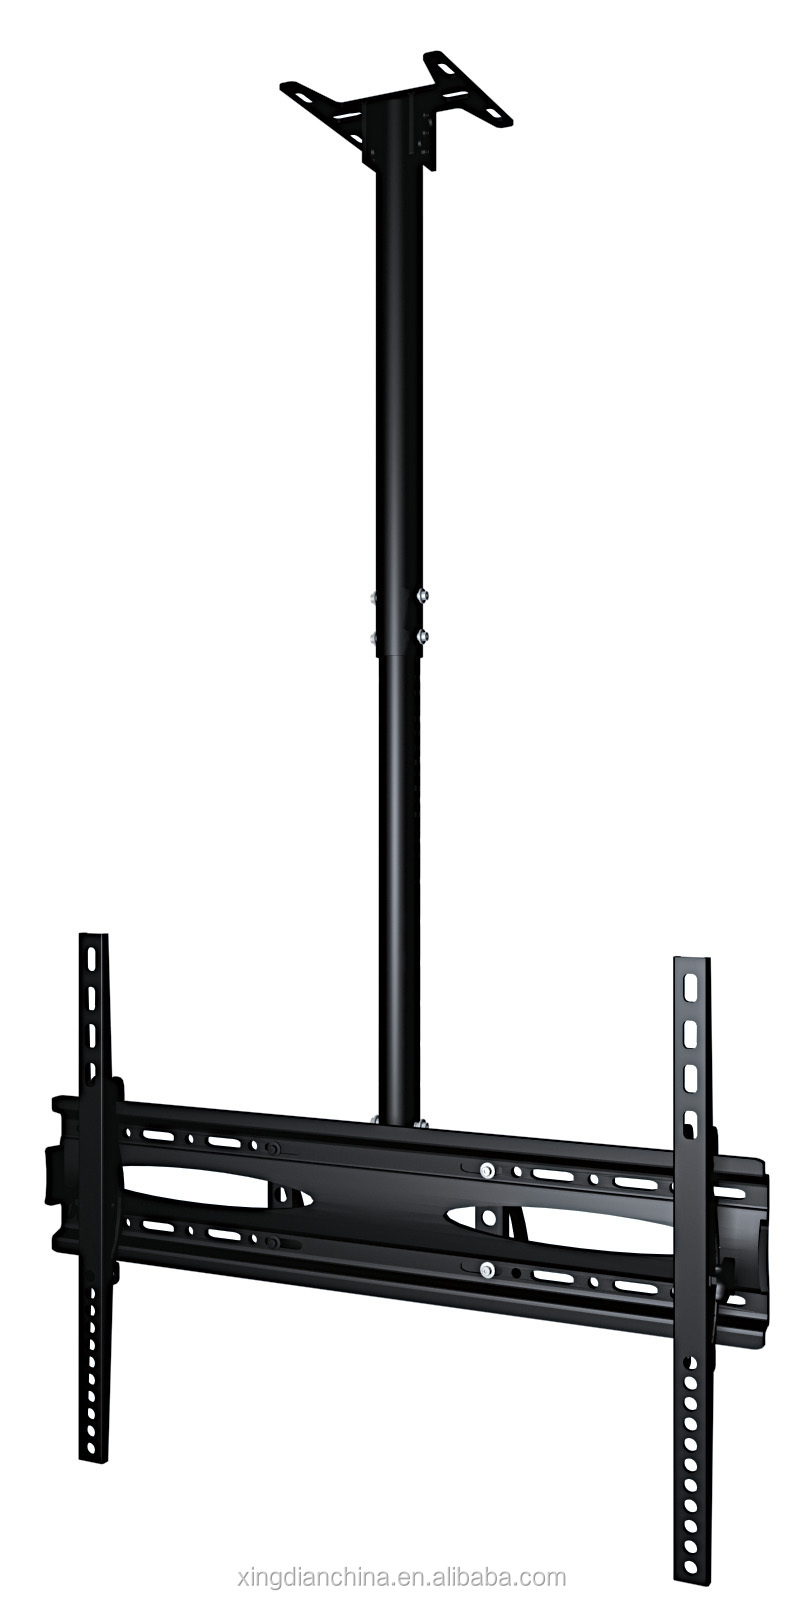 Removable flip down tv ceiling mount for 60 led lcd tvs for Motorized flip down tv mount